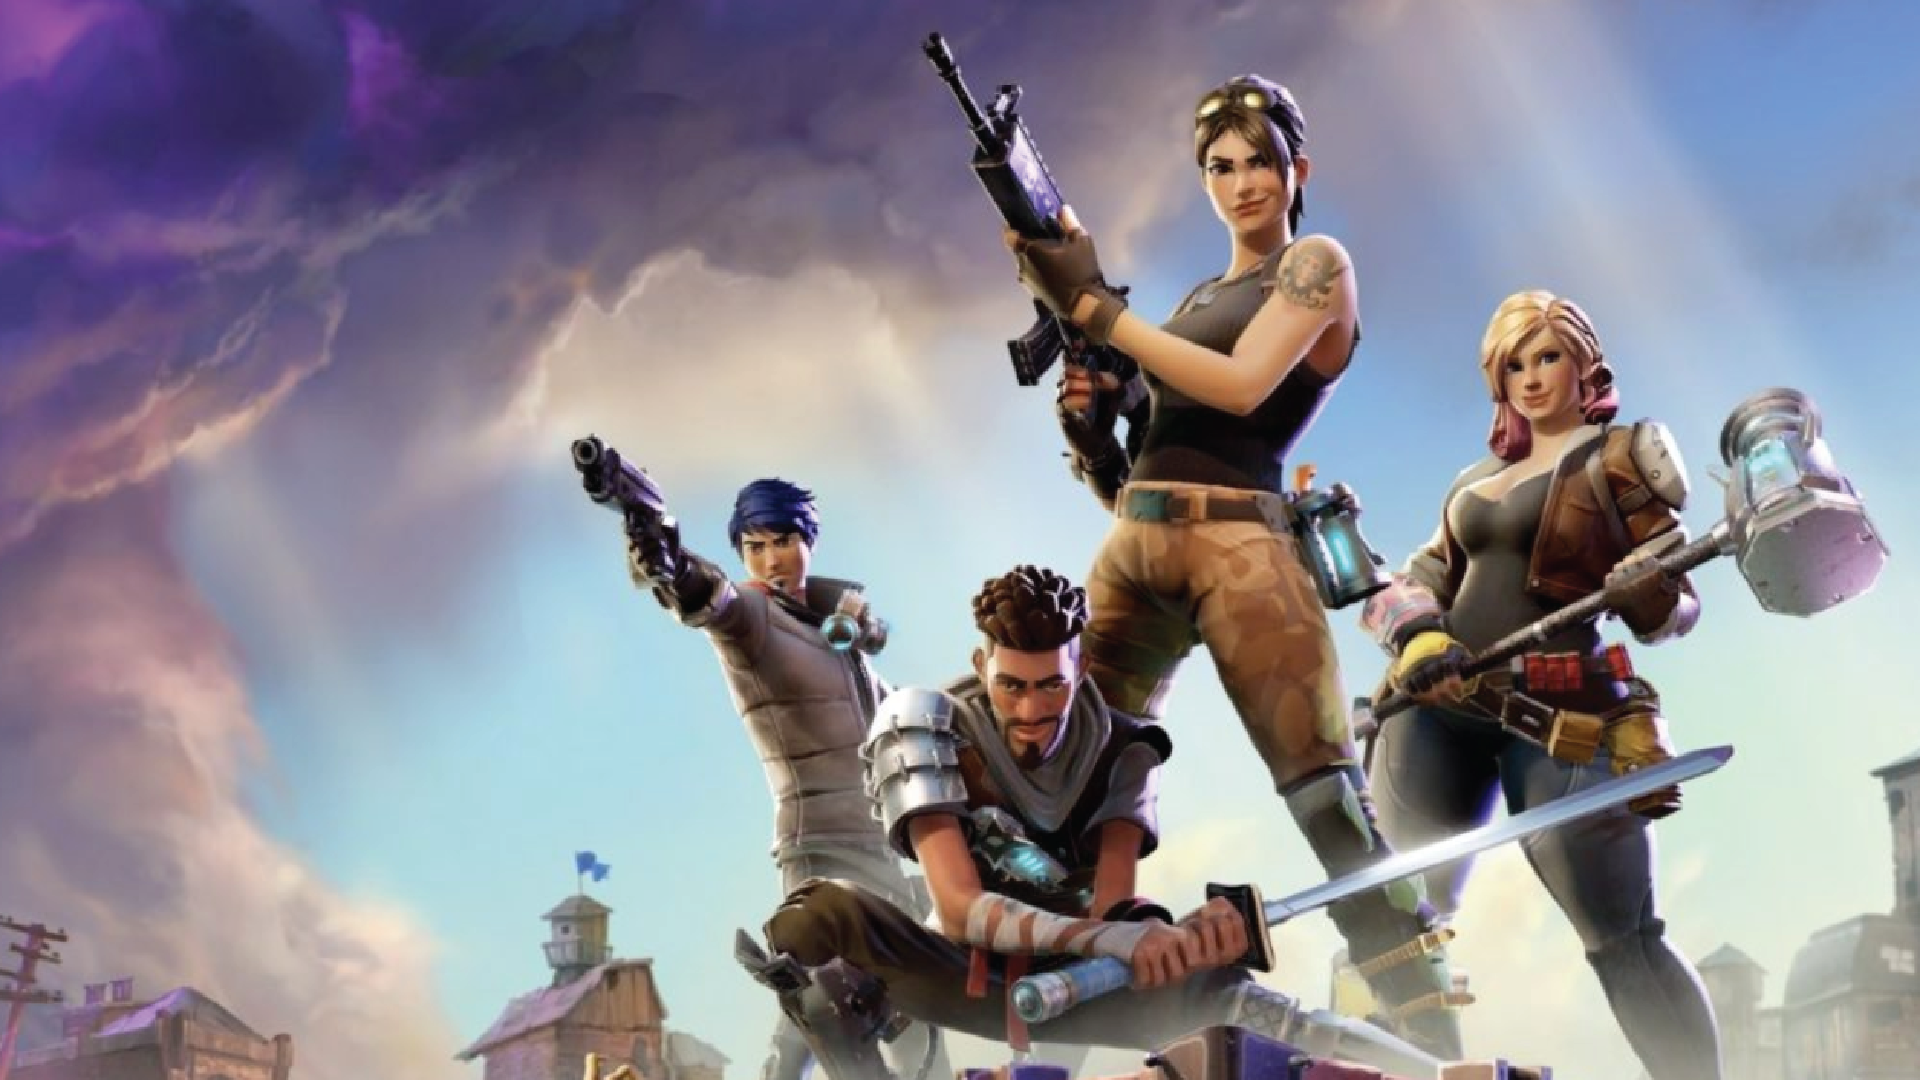 Install Fortnite Apk Fix Device Not Supported For Android Devices